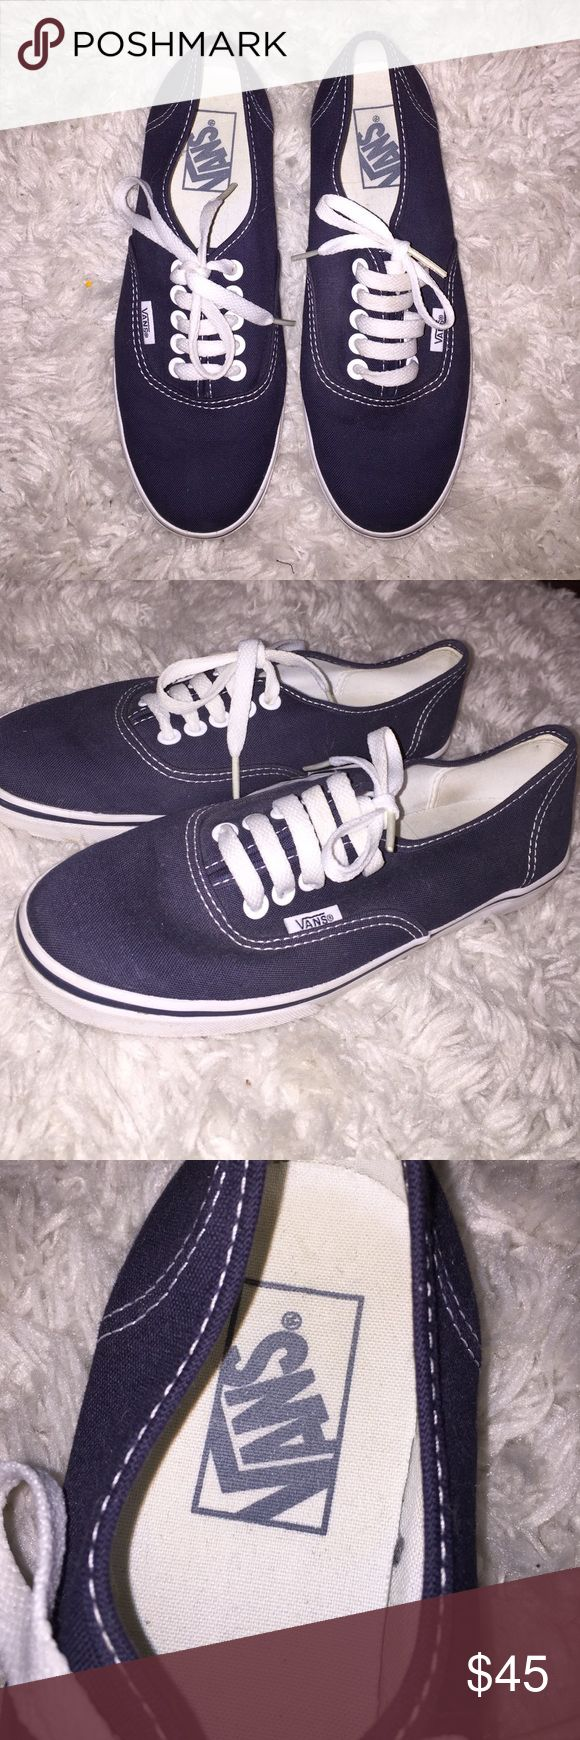 BARELY WORN Navy Blue Vans BARELY WORN Navy Blue Vans in perfect condition! Vans Shoes Sneakers